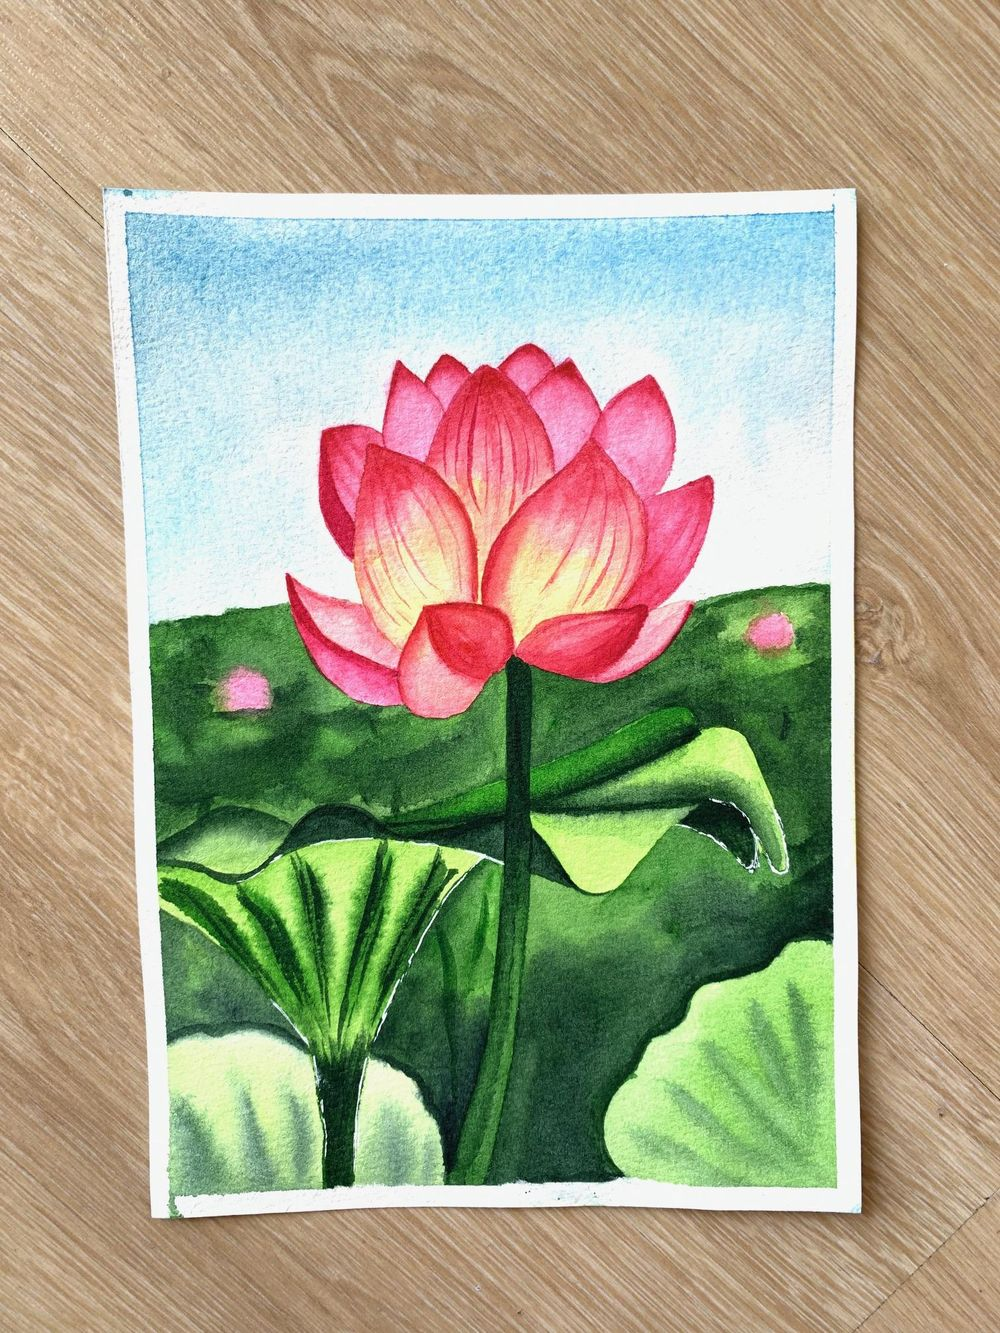 Watercolor Lotus and Water Lily - image 1 - student project